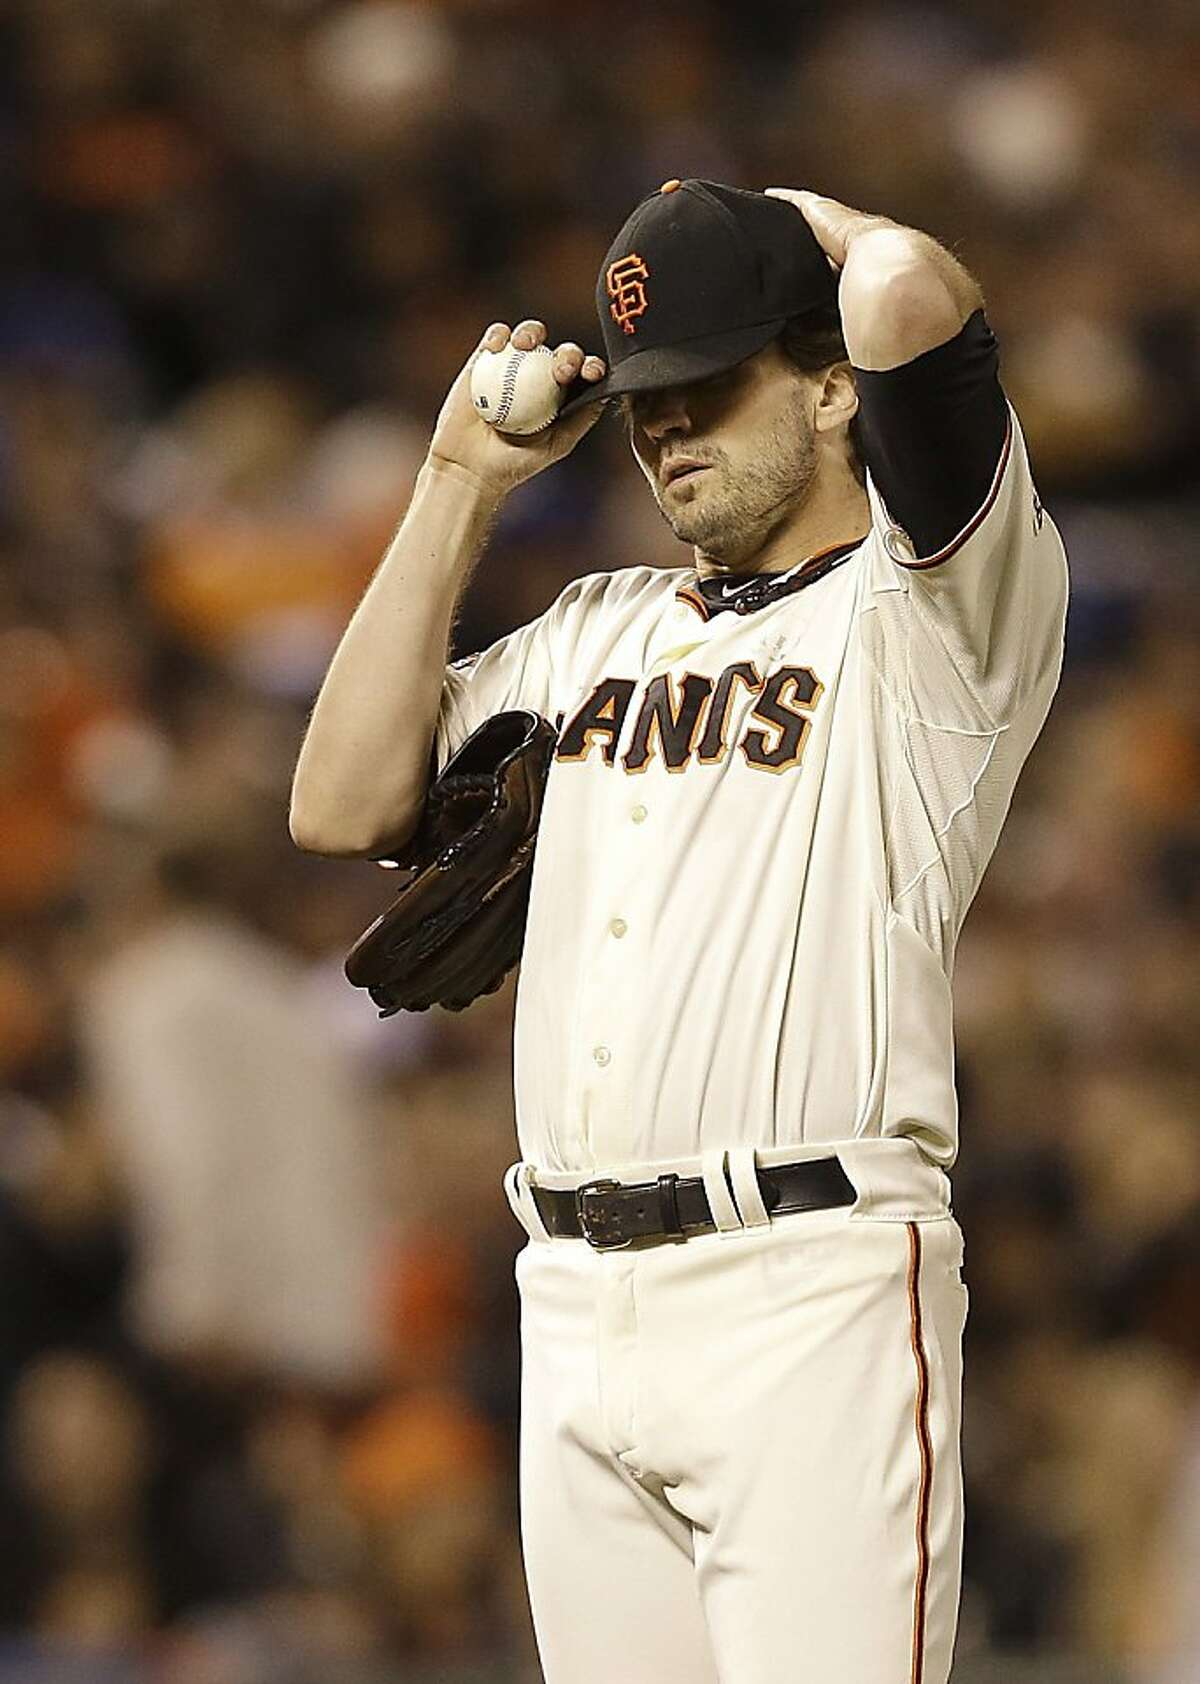 Barry Zito: Enjoying a successful music career Zito has been making music since retiring from baseball in 2015, and his first EP